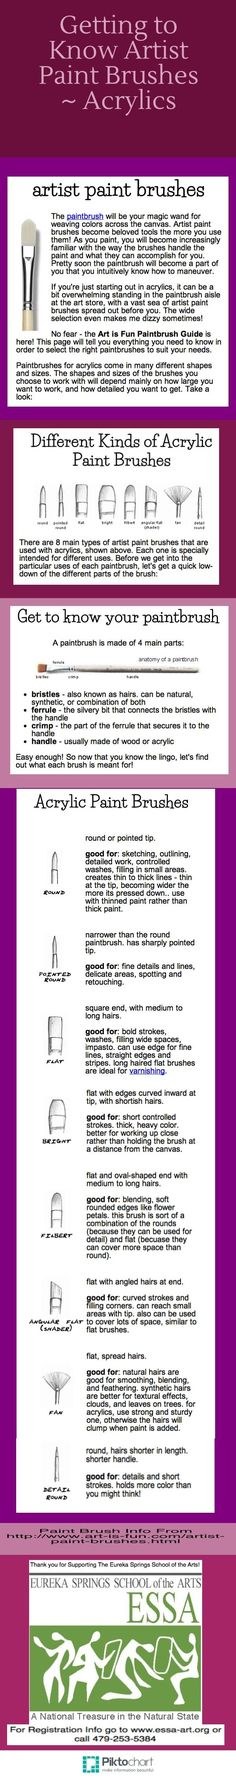 Great Tips on Getting to Know Acrylic Paint Brushes From http://www.art-is-fun.com/artist-paint-brushes.html: